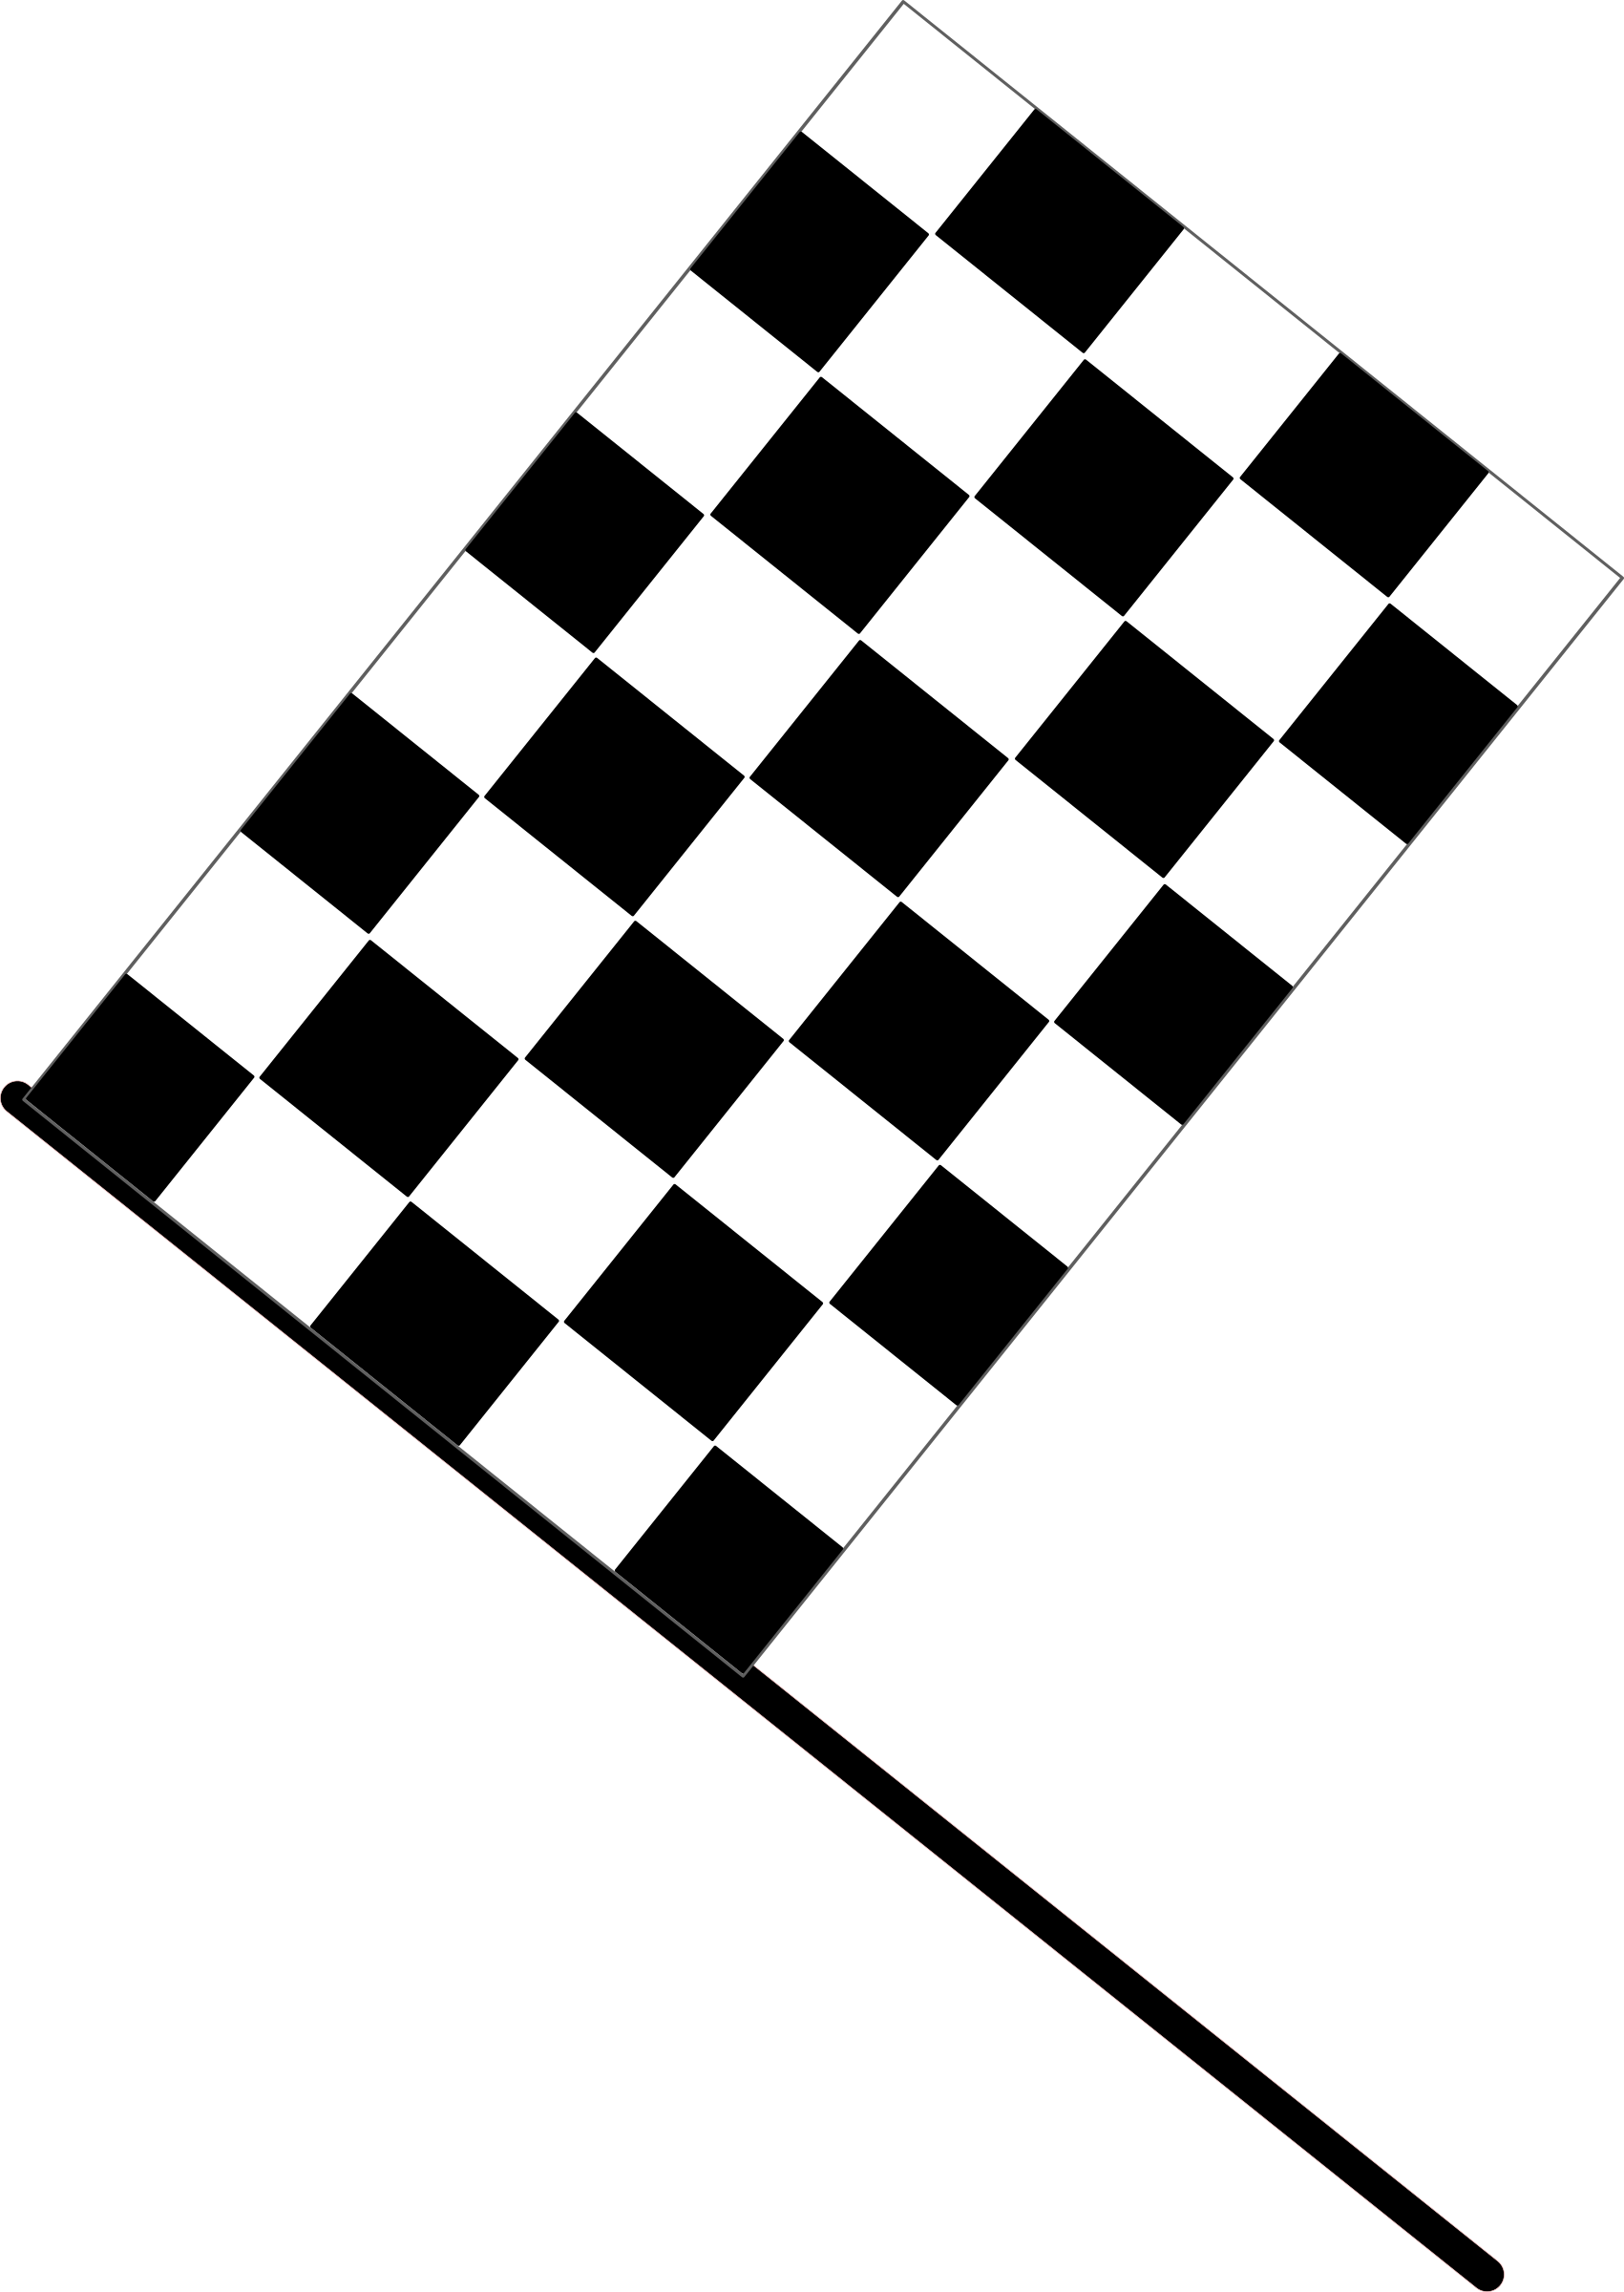 Checkered flag icons png. Floor clipart chekered